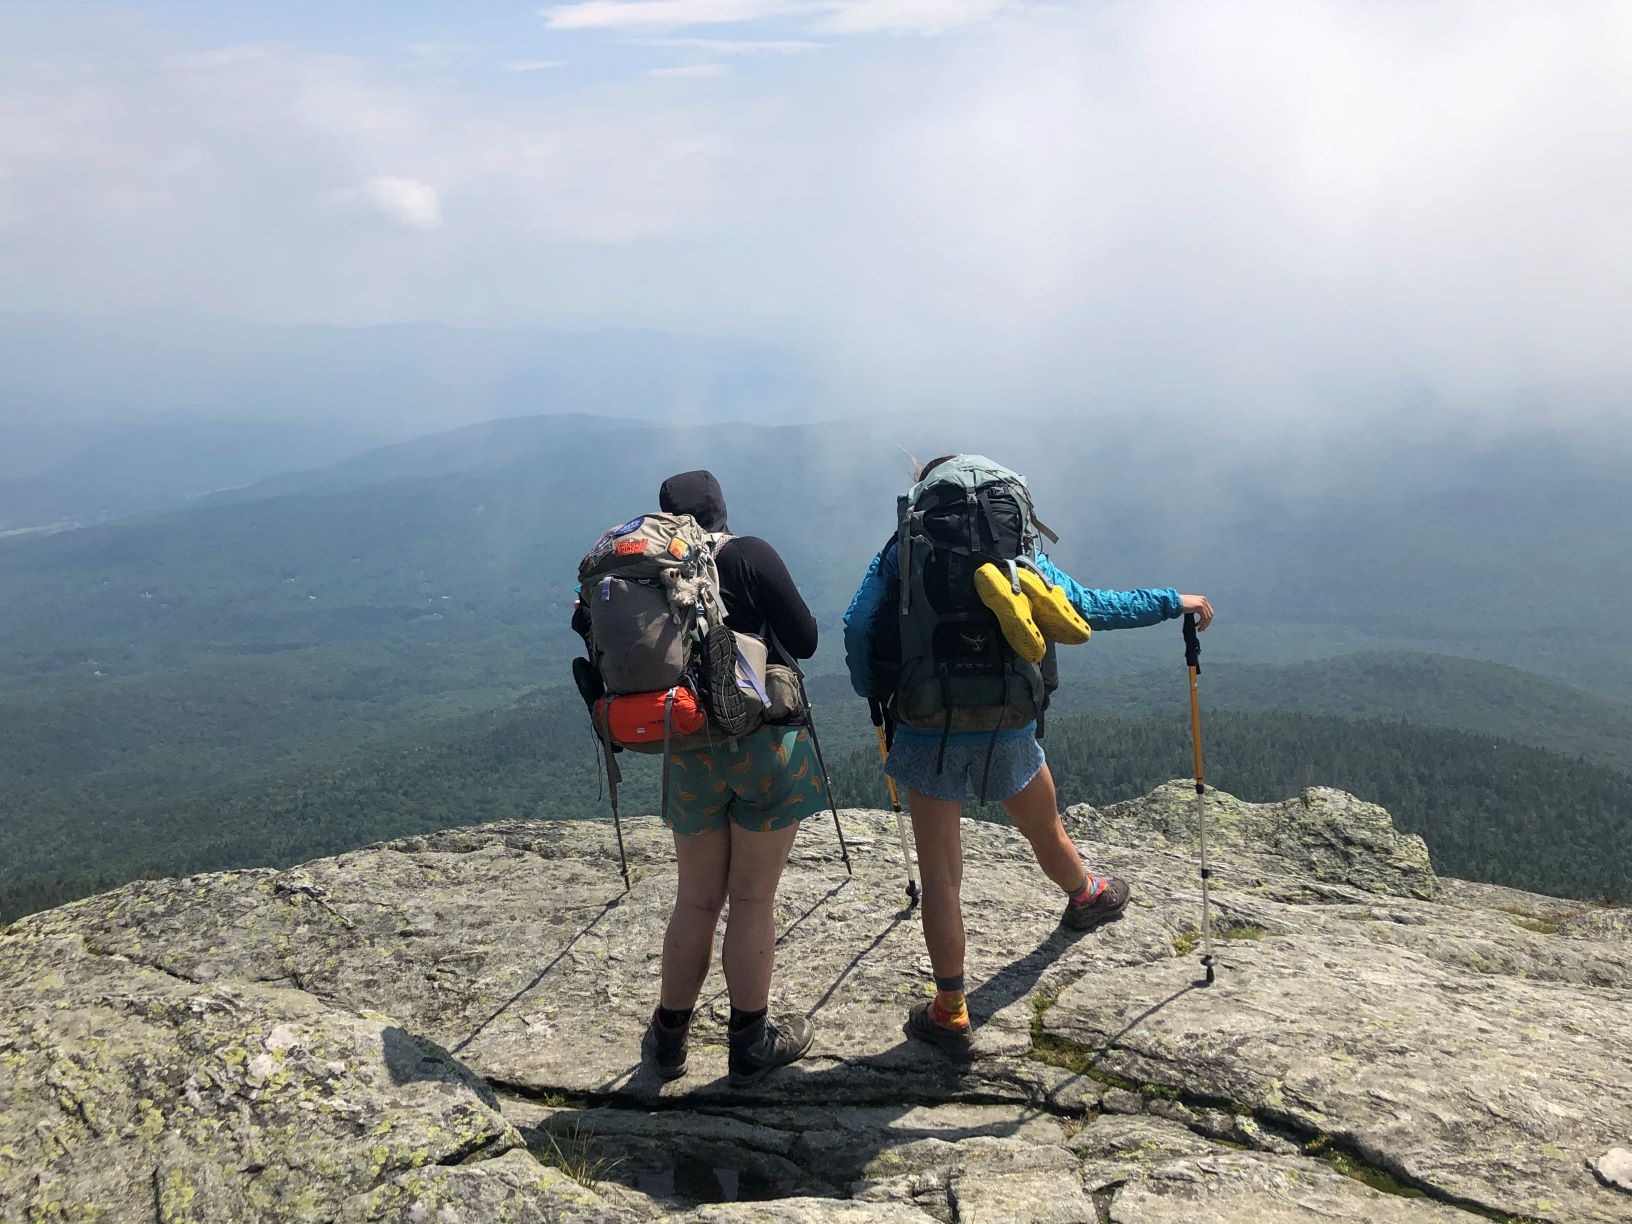 Two hikers on top of a mountain facing out.